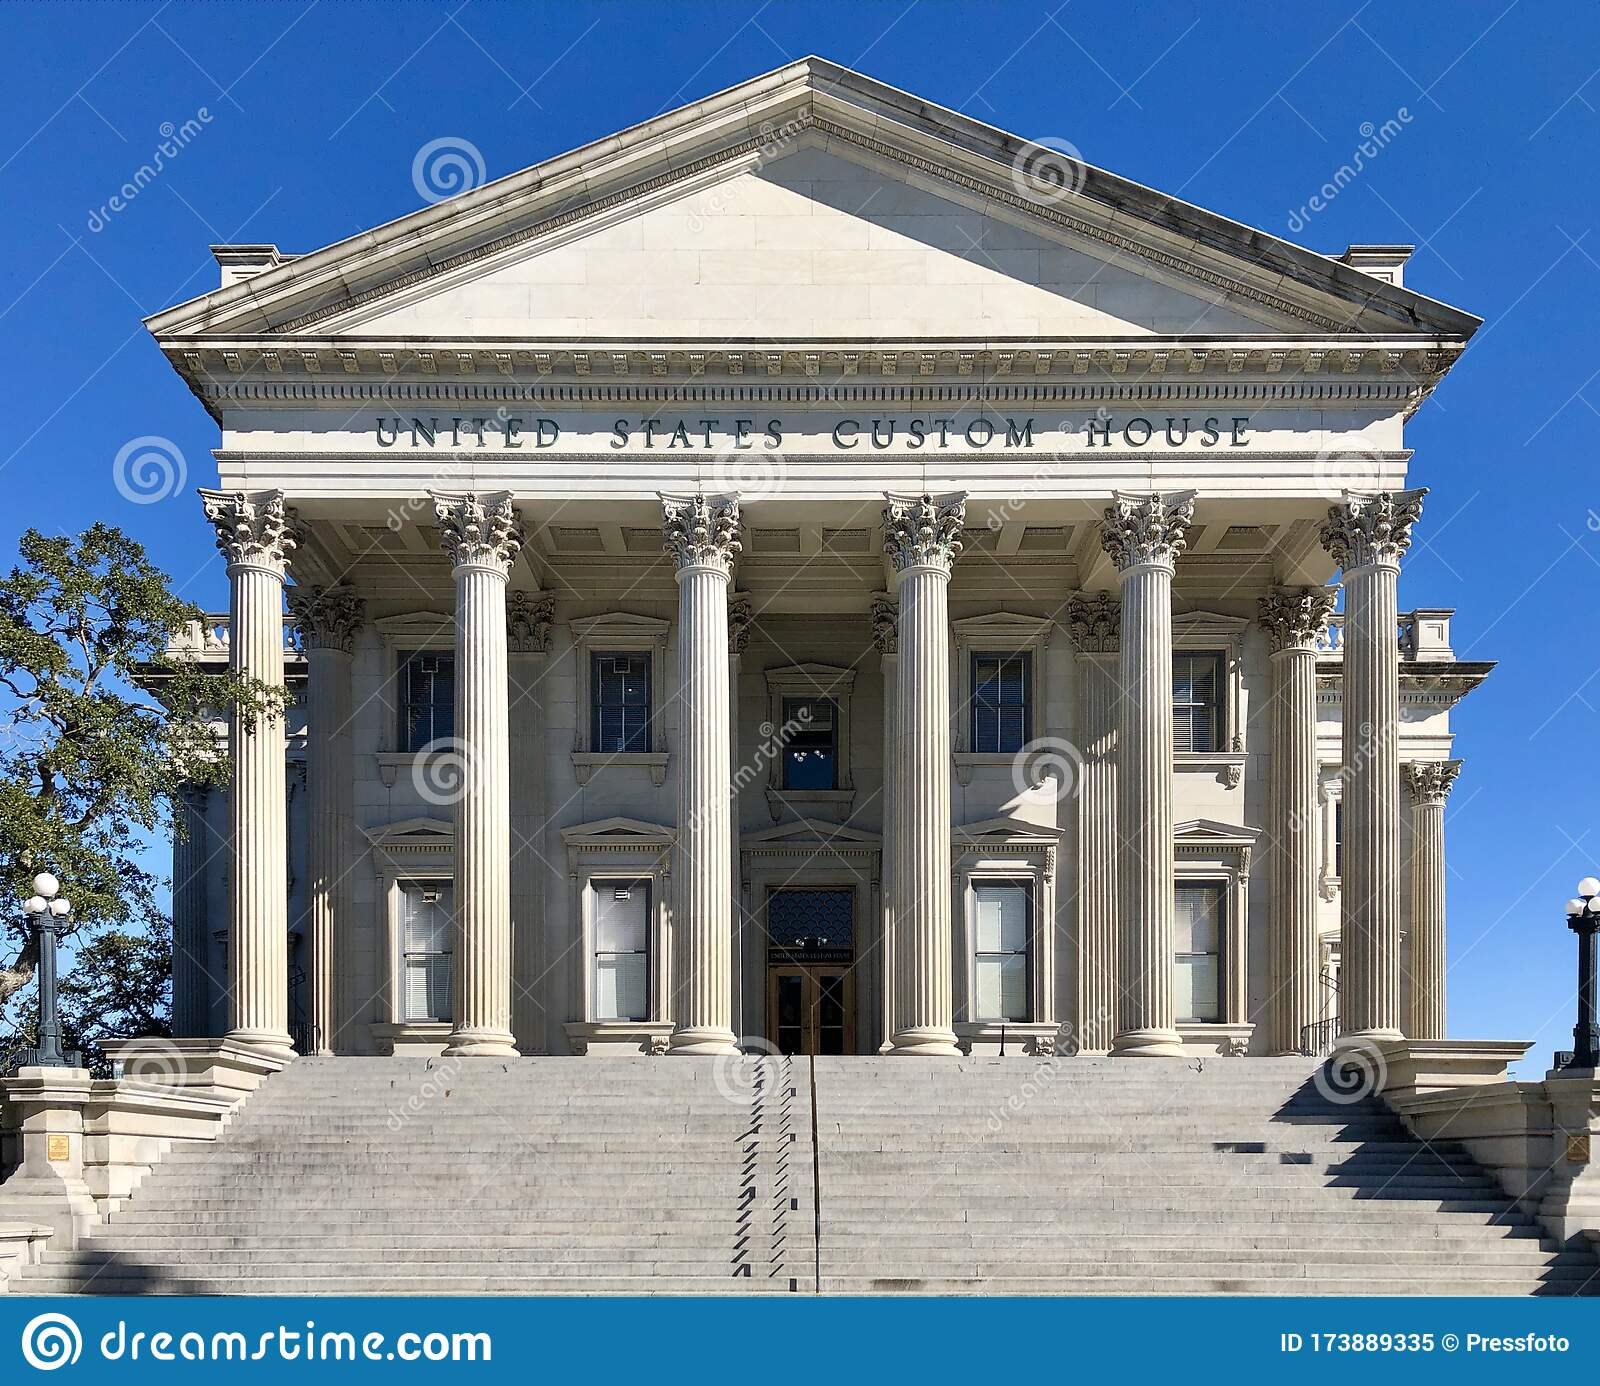 United States Custom House Editorial Image Image Of Country 173889335